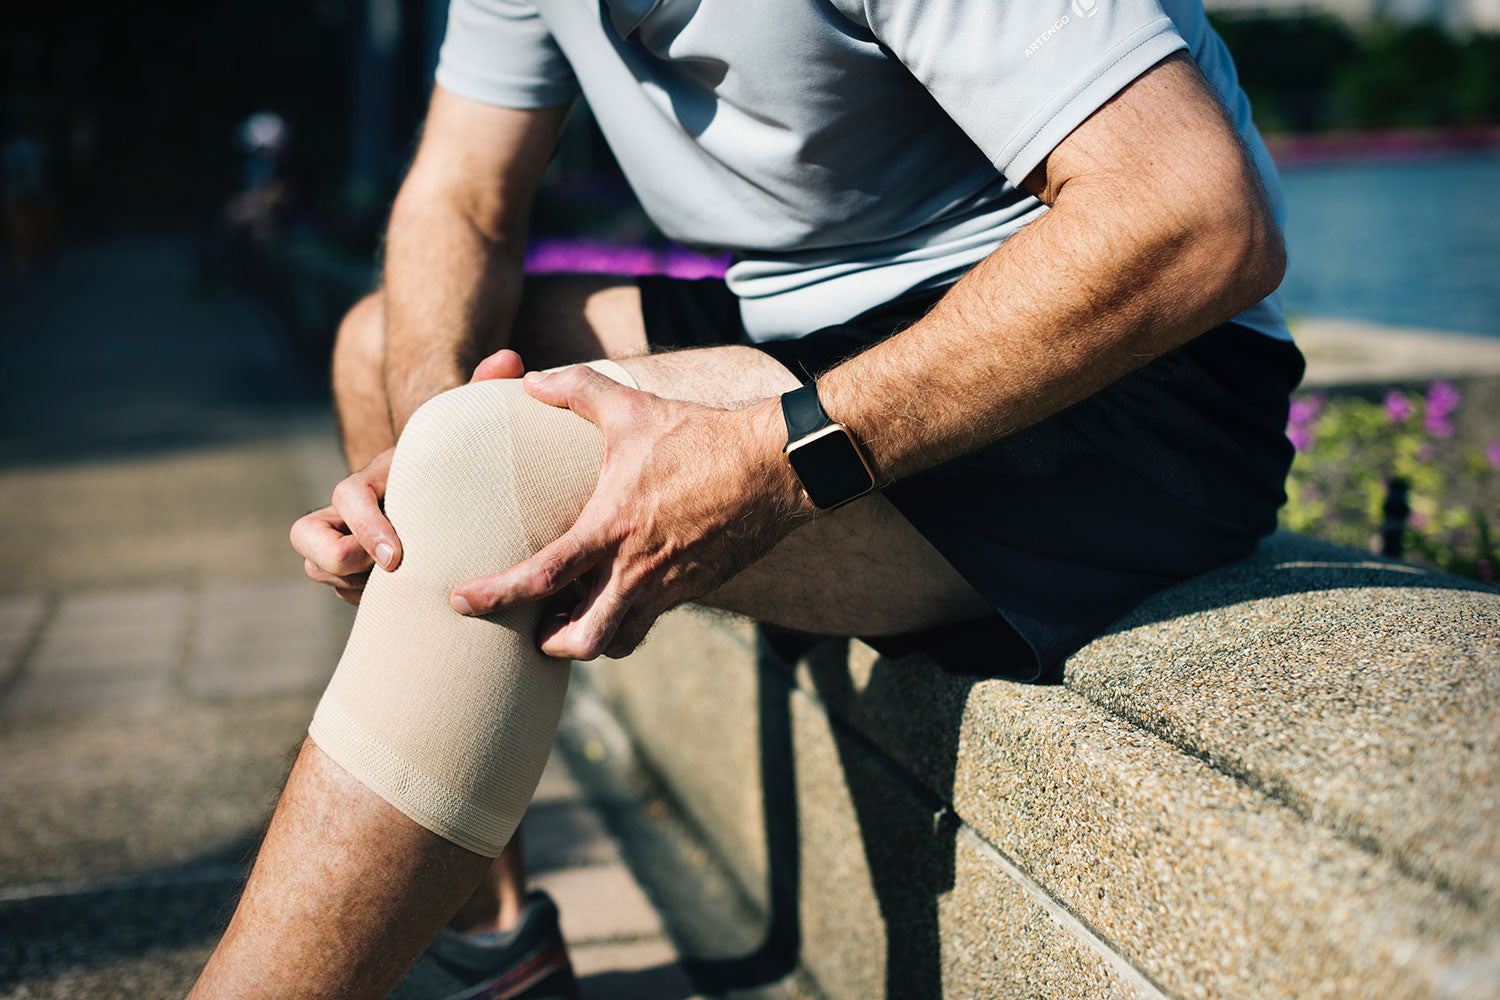 Decreases Knee and Joint Point